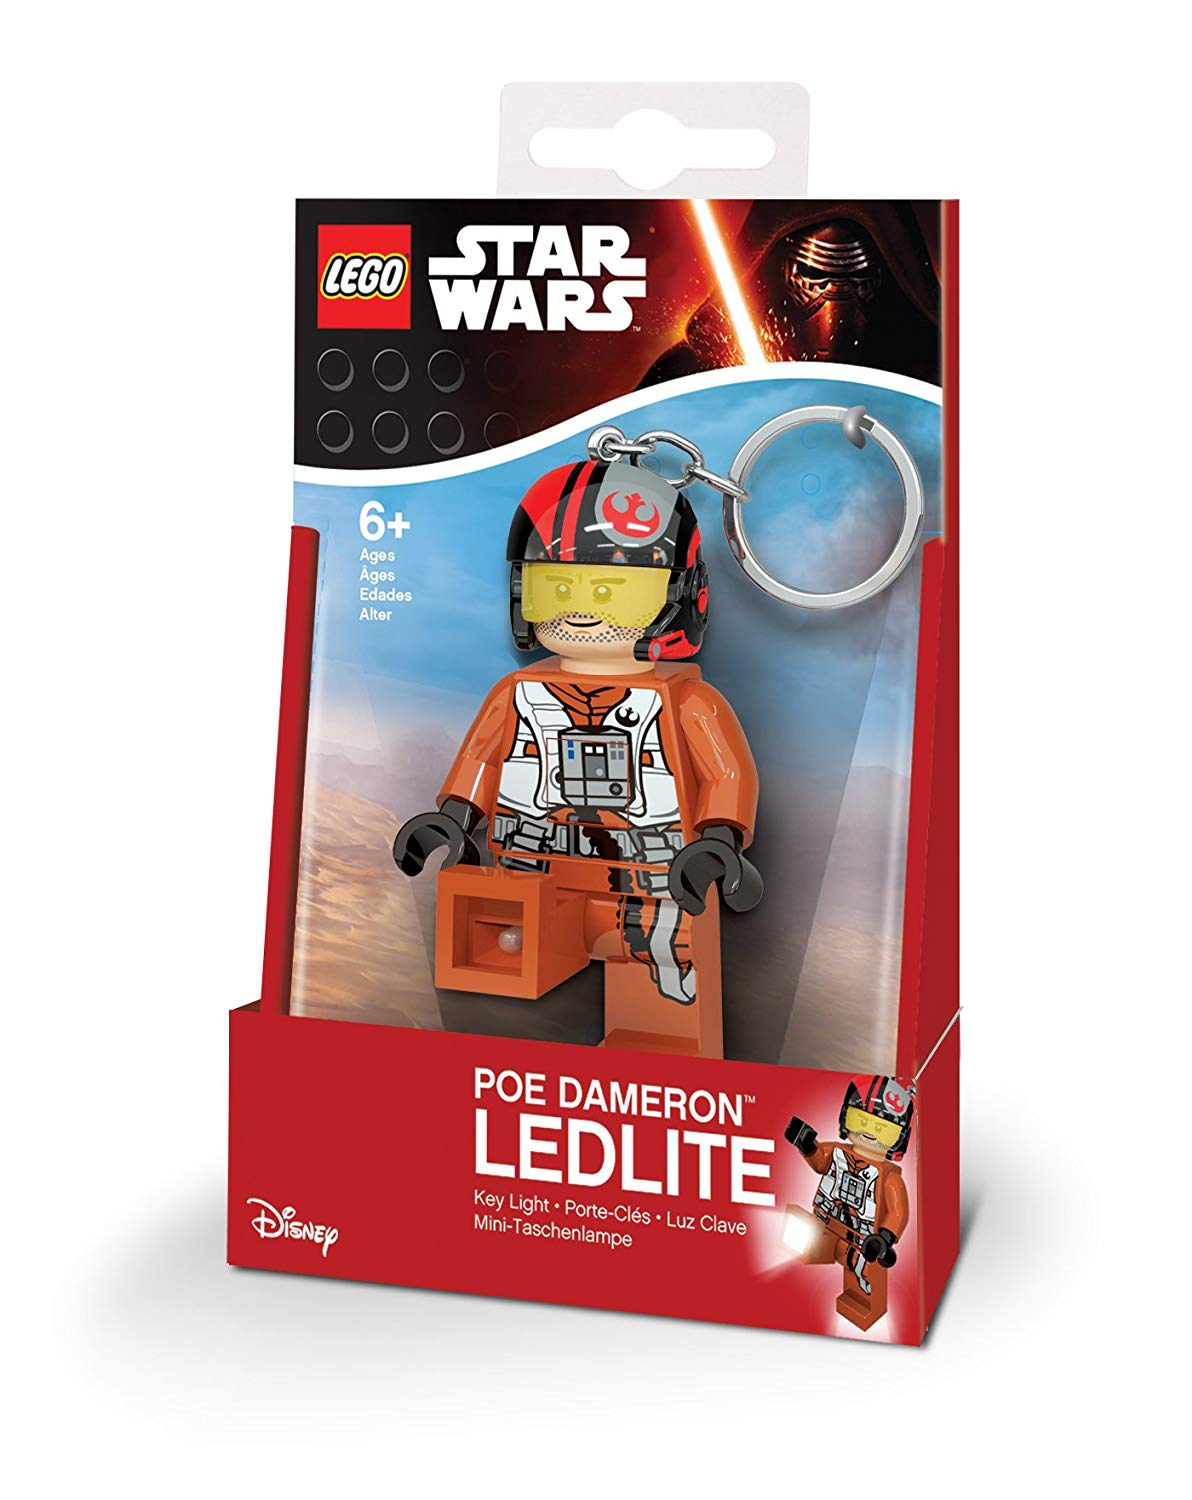 LEGO Star Wars PoE Dameron 31255 – Mini Torch And Key Ring with LED, 7.6 cm